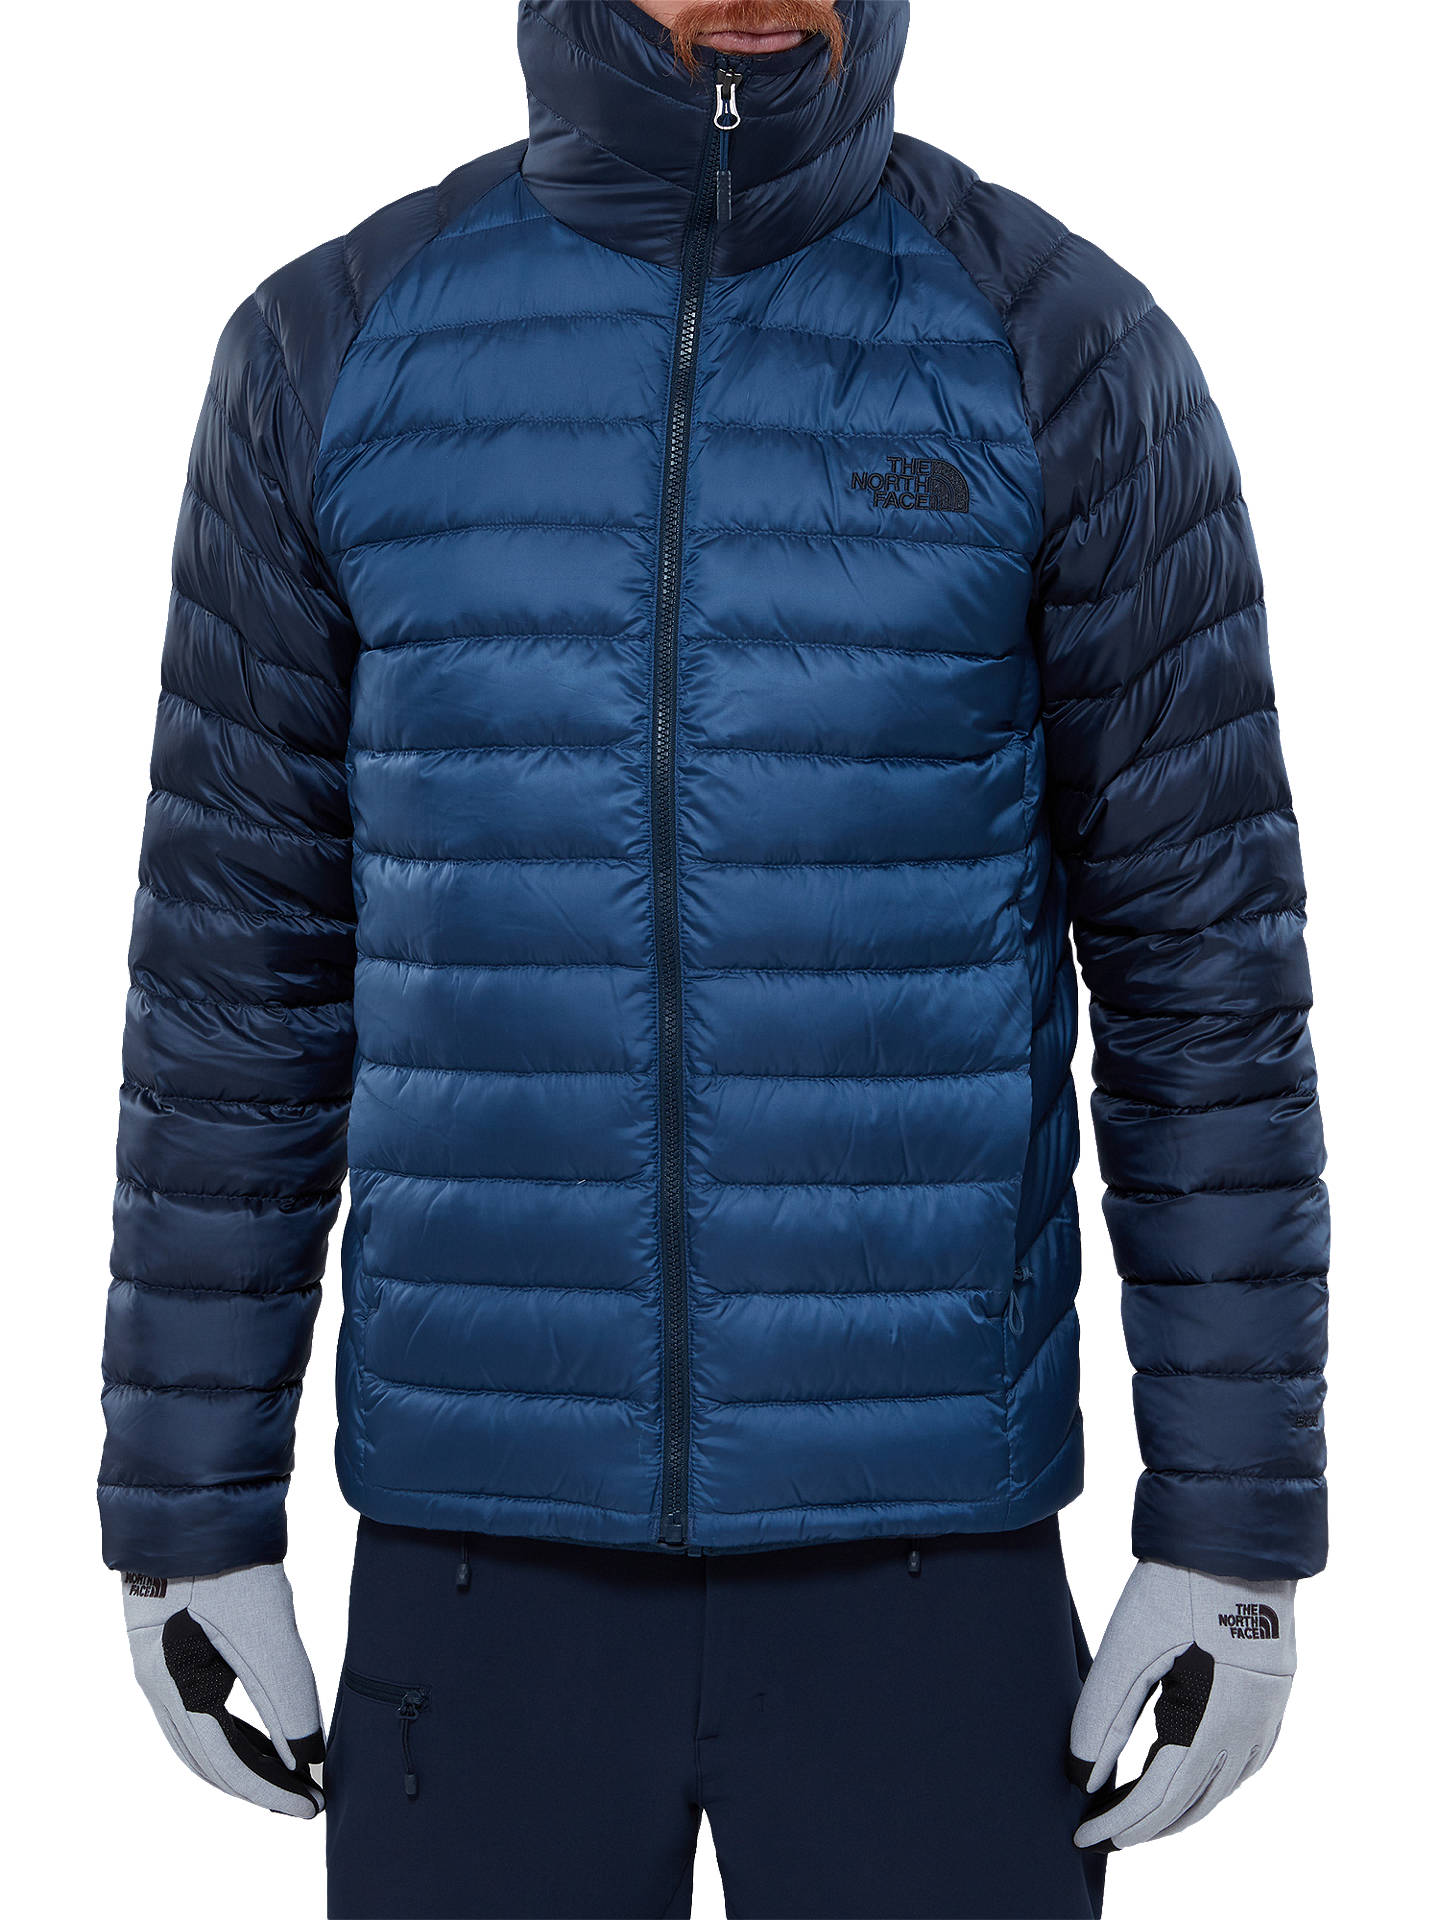 17c52d02a0b3 Buy The North Face Men s Trevail Hooded Jacket